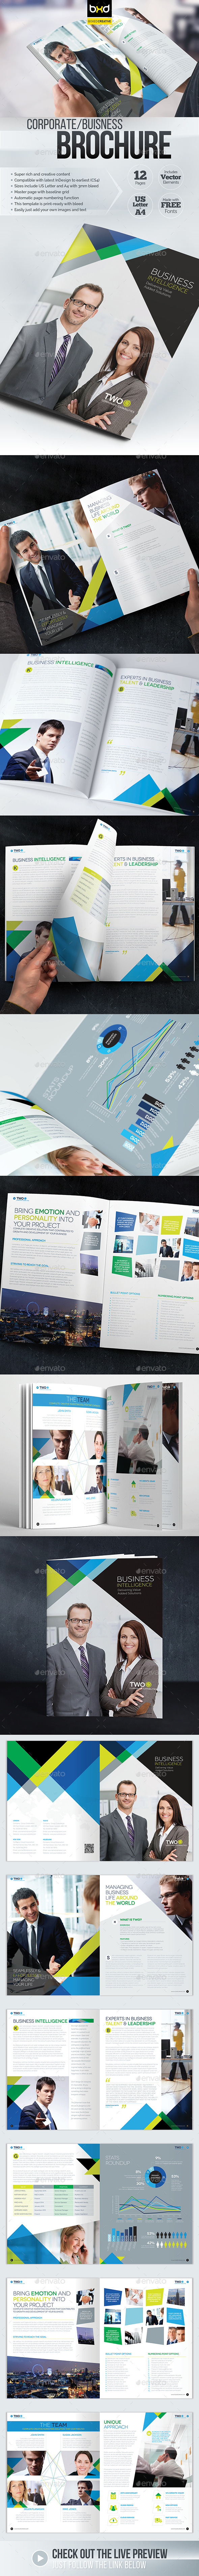 Brochure Template - InDesign 12 Page Layout 08 - Brochures Print Templates